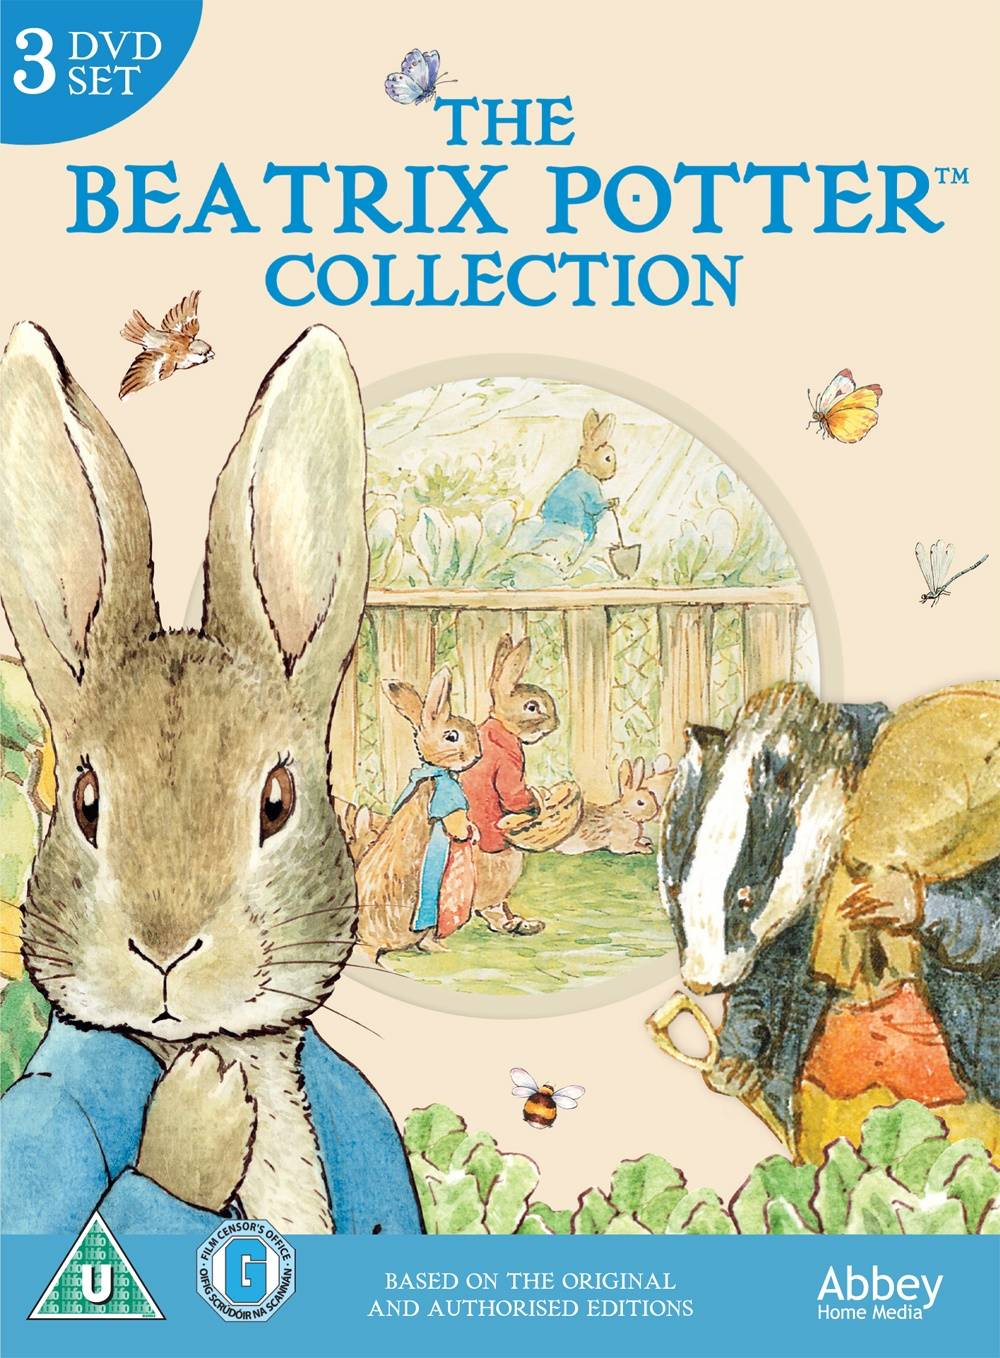 Win the Beatrix Potter Collection DVD Set! - lovefrommim.com